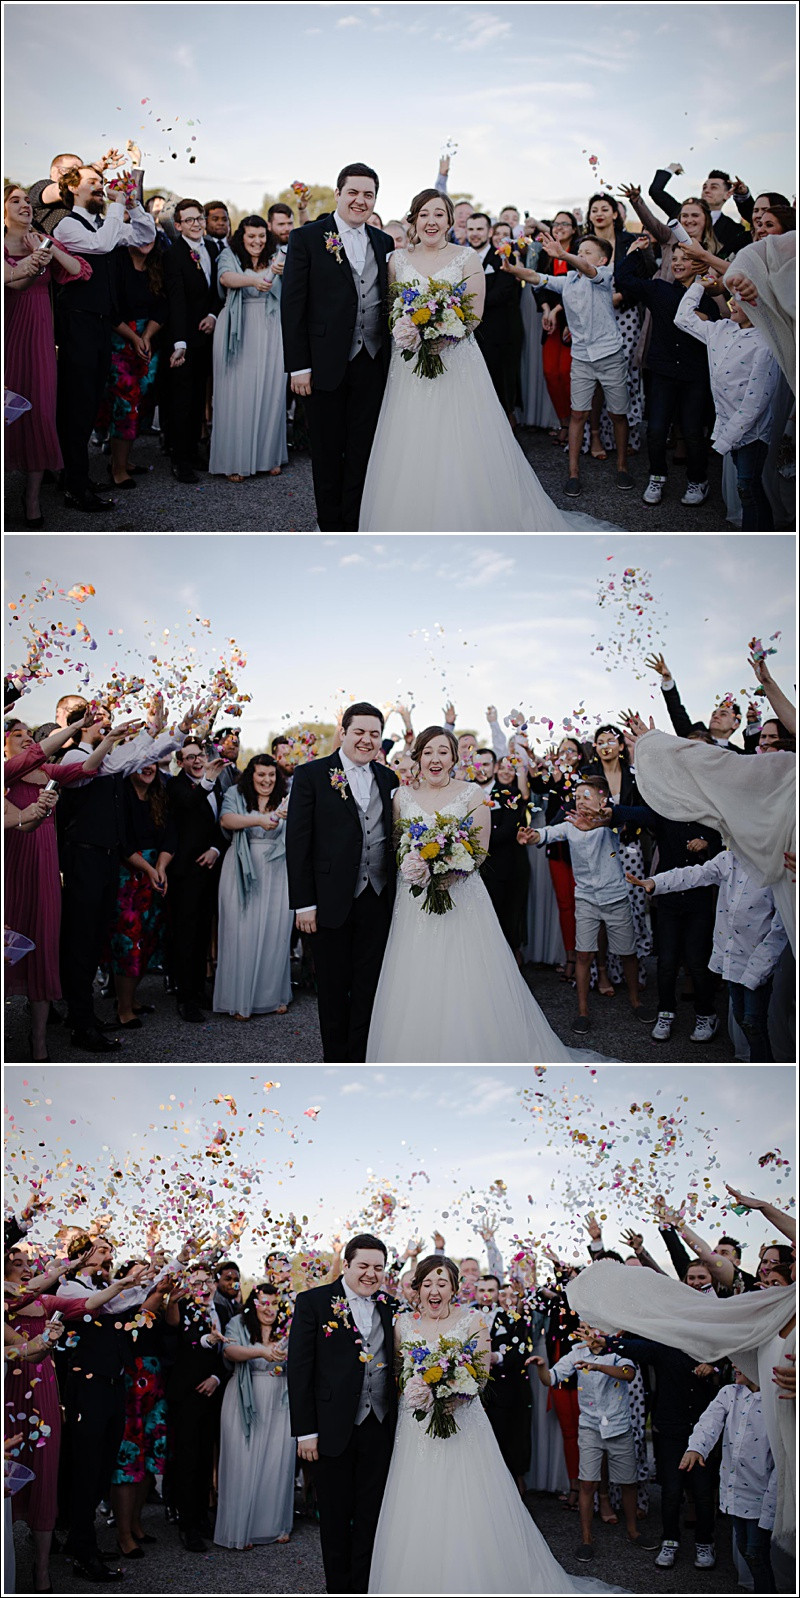 Rainbow wedding confetti